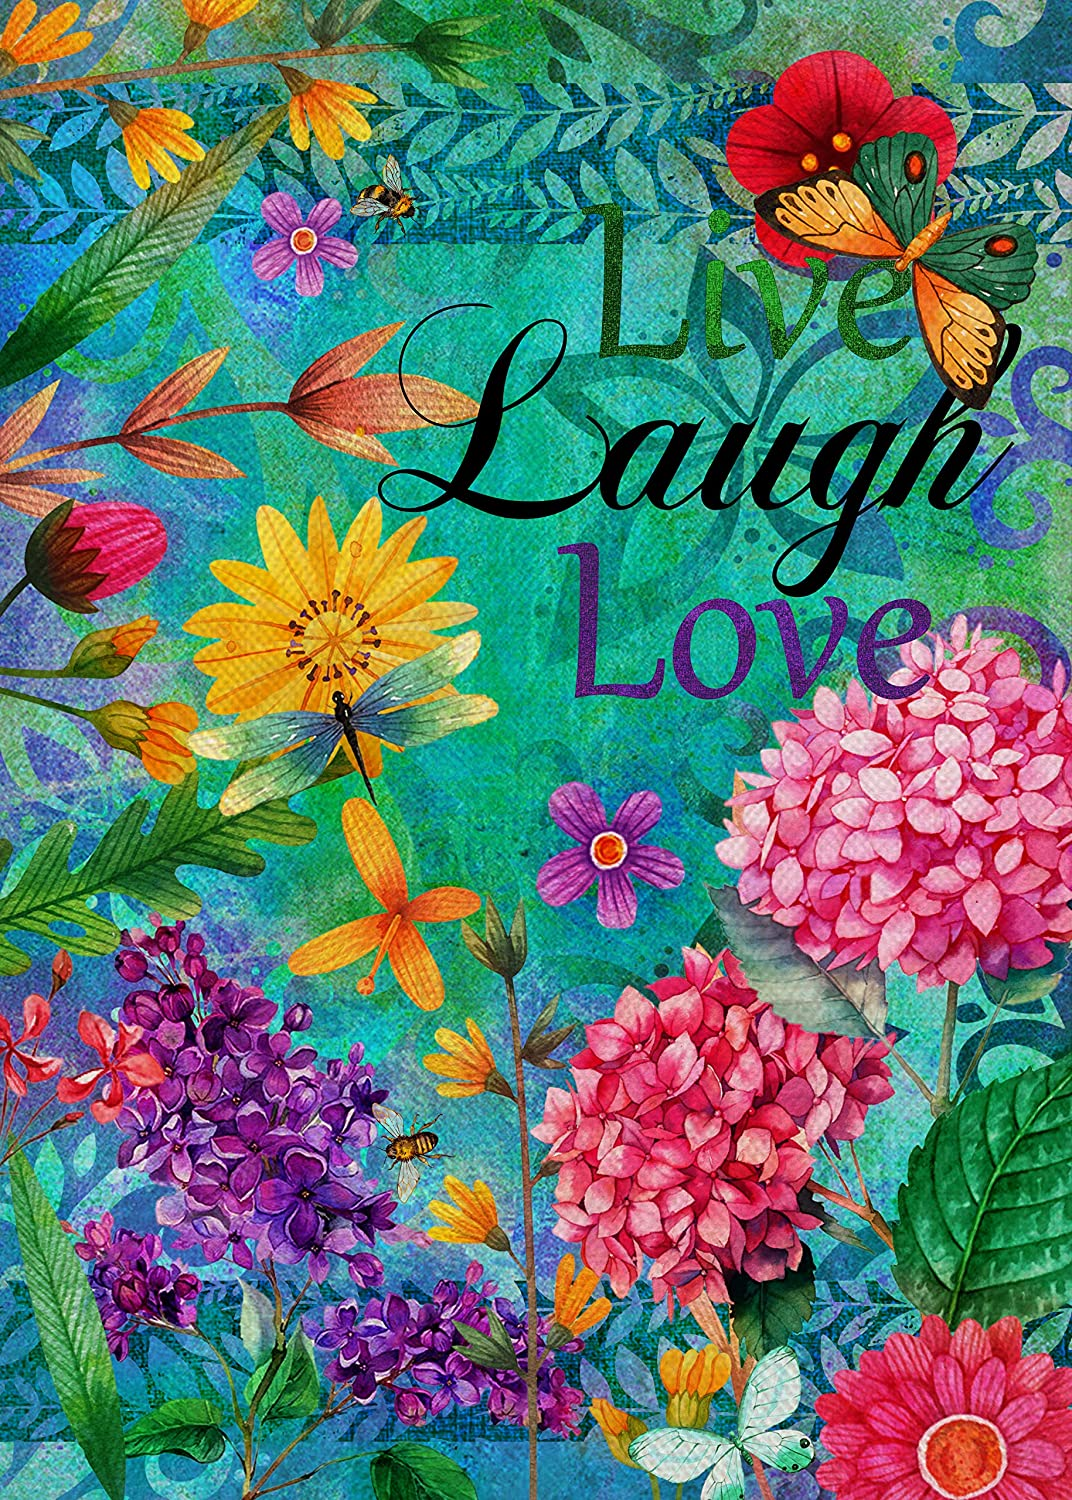 Covido Home Decorative Spring Garden Flag Live Laugh Love Hydrangea Flower House Yard Butterfly Decor Farmhouse Outside Inspirational Decoration Summer Outdoor Small Burlap Flag Double Sided 12 x 18